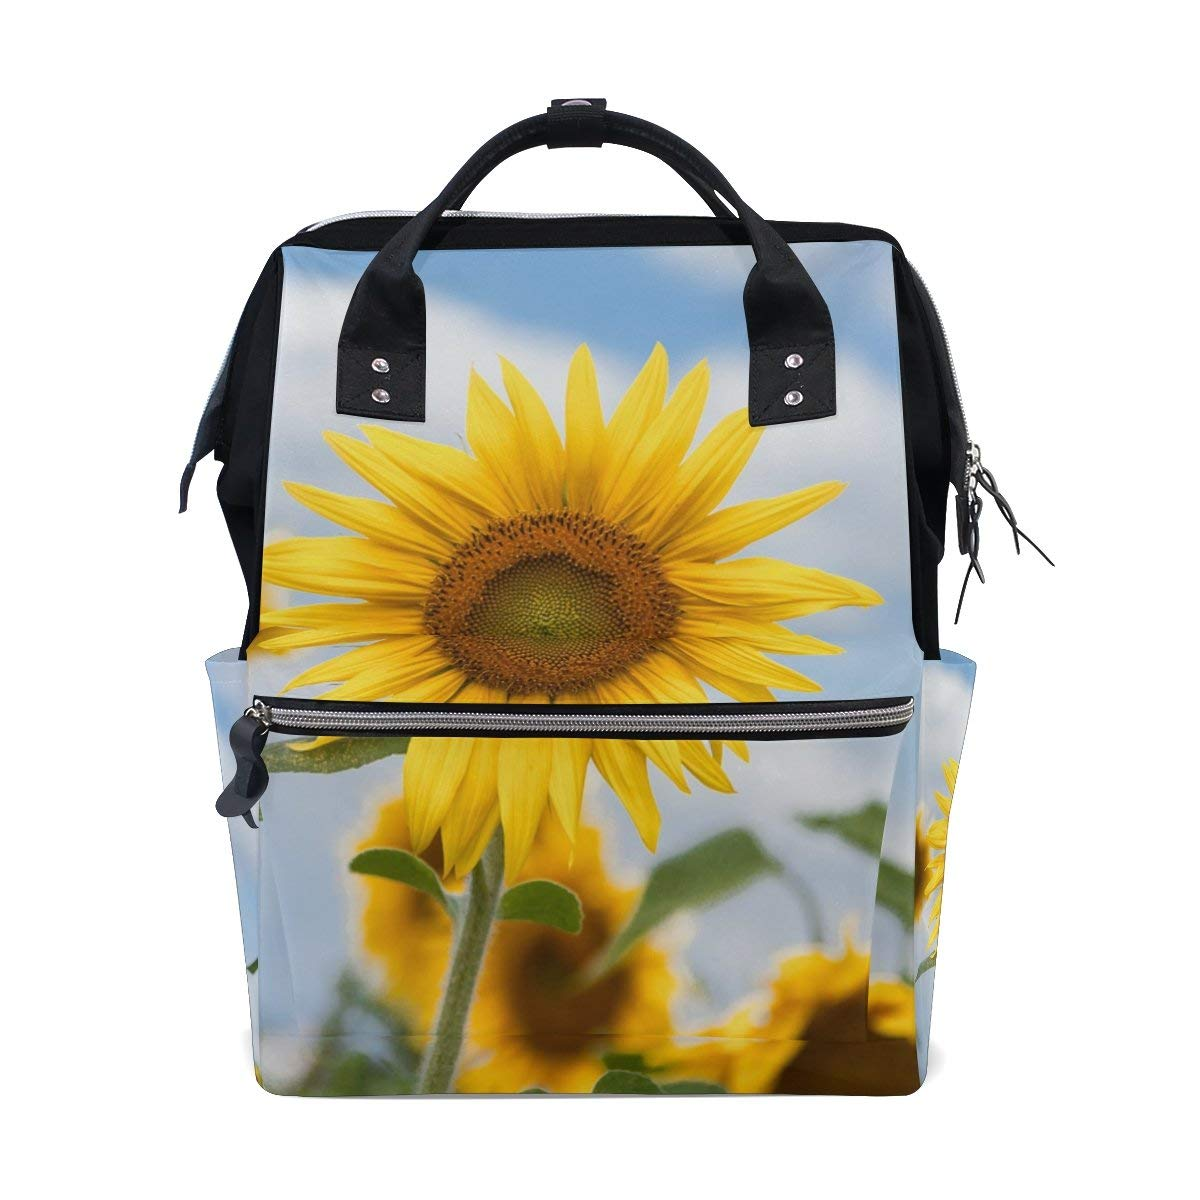 Diaper Bags Backpack Purse Mummy Backpack Fashion Mummy Maternity Nappy Bag Cool Cute Travel Backpack Laptop Backpack with Sunflowers Daypack for Women Girls Kids